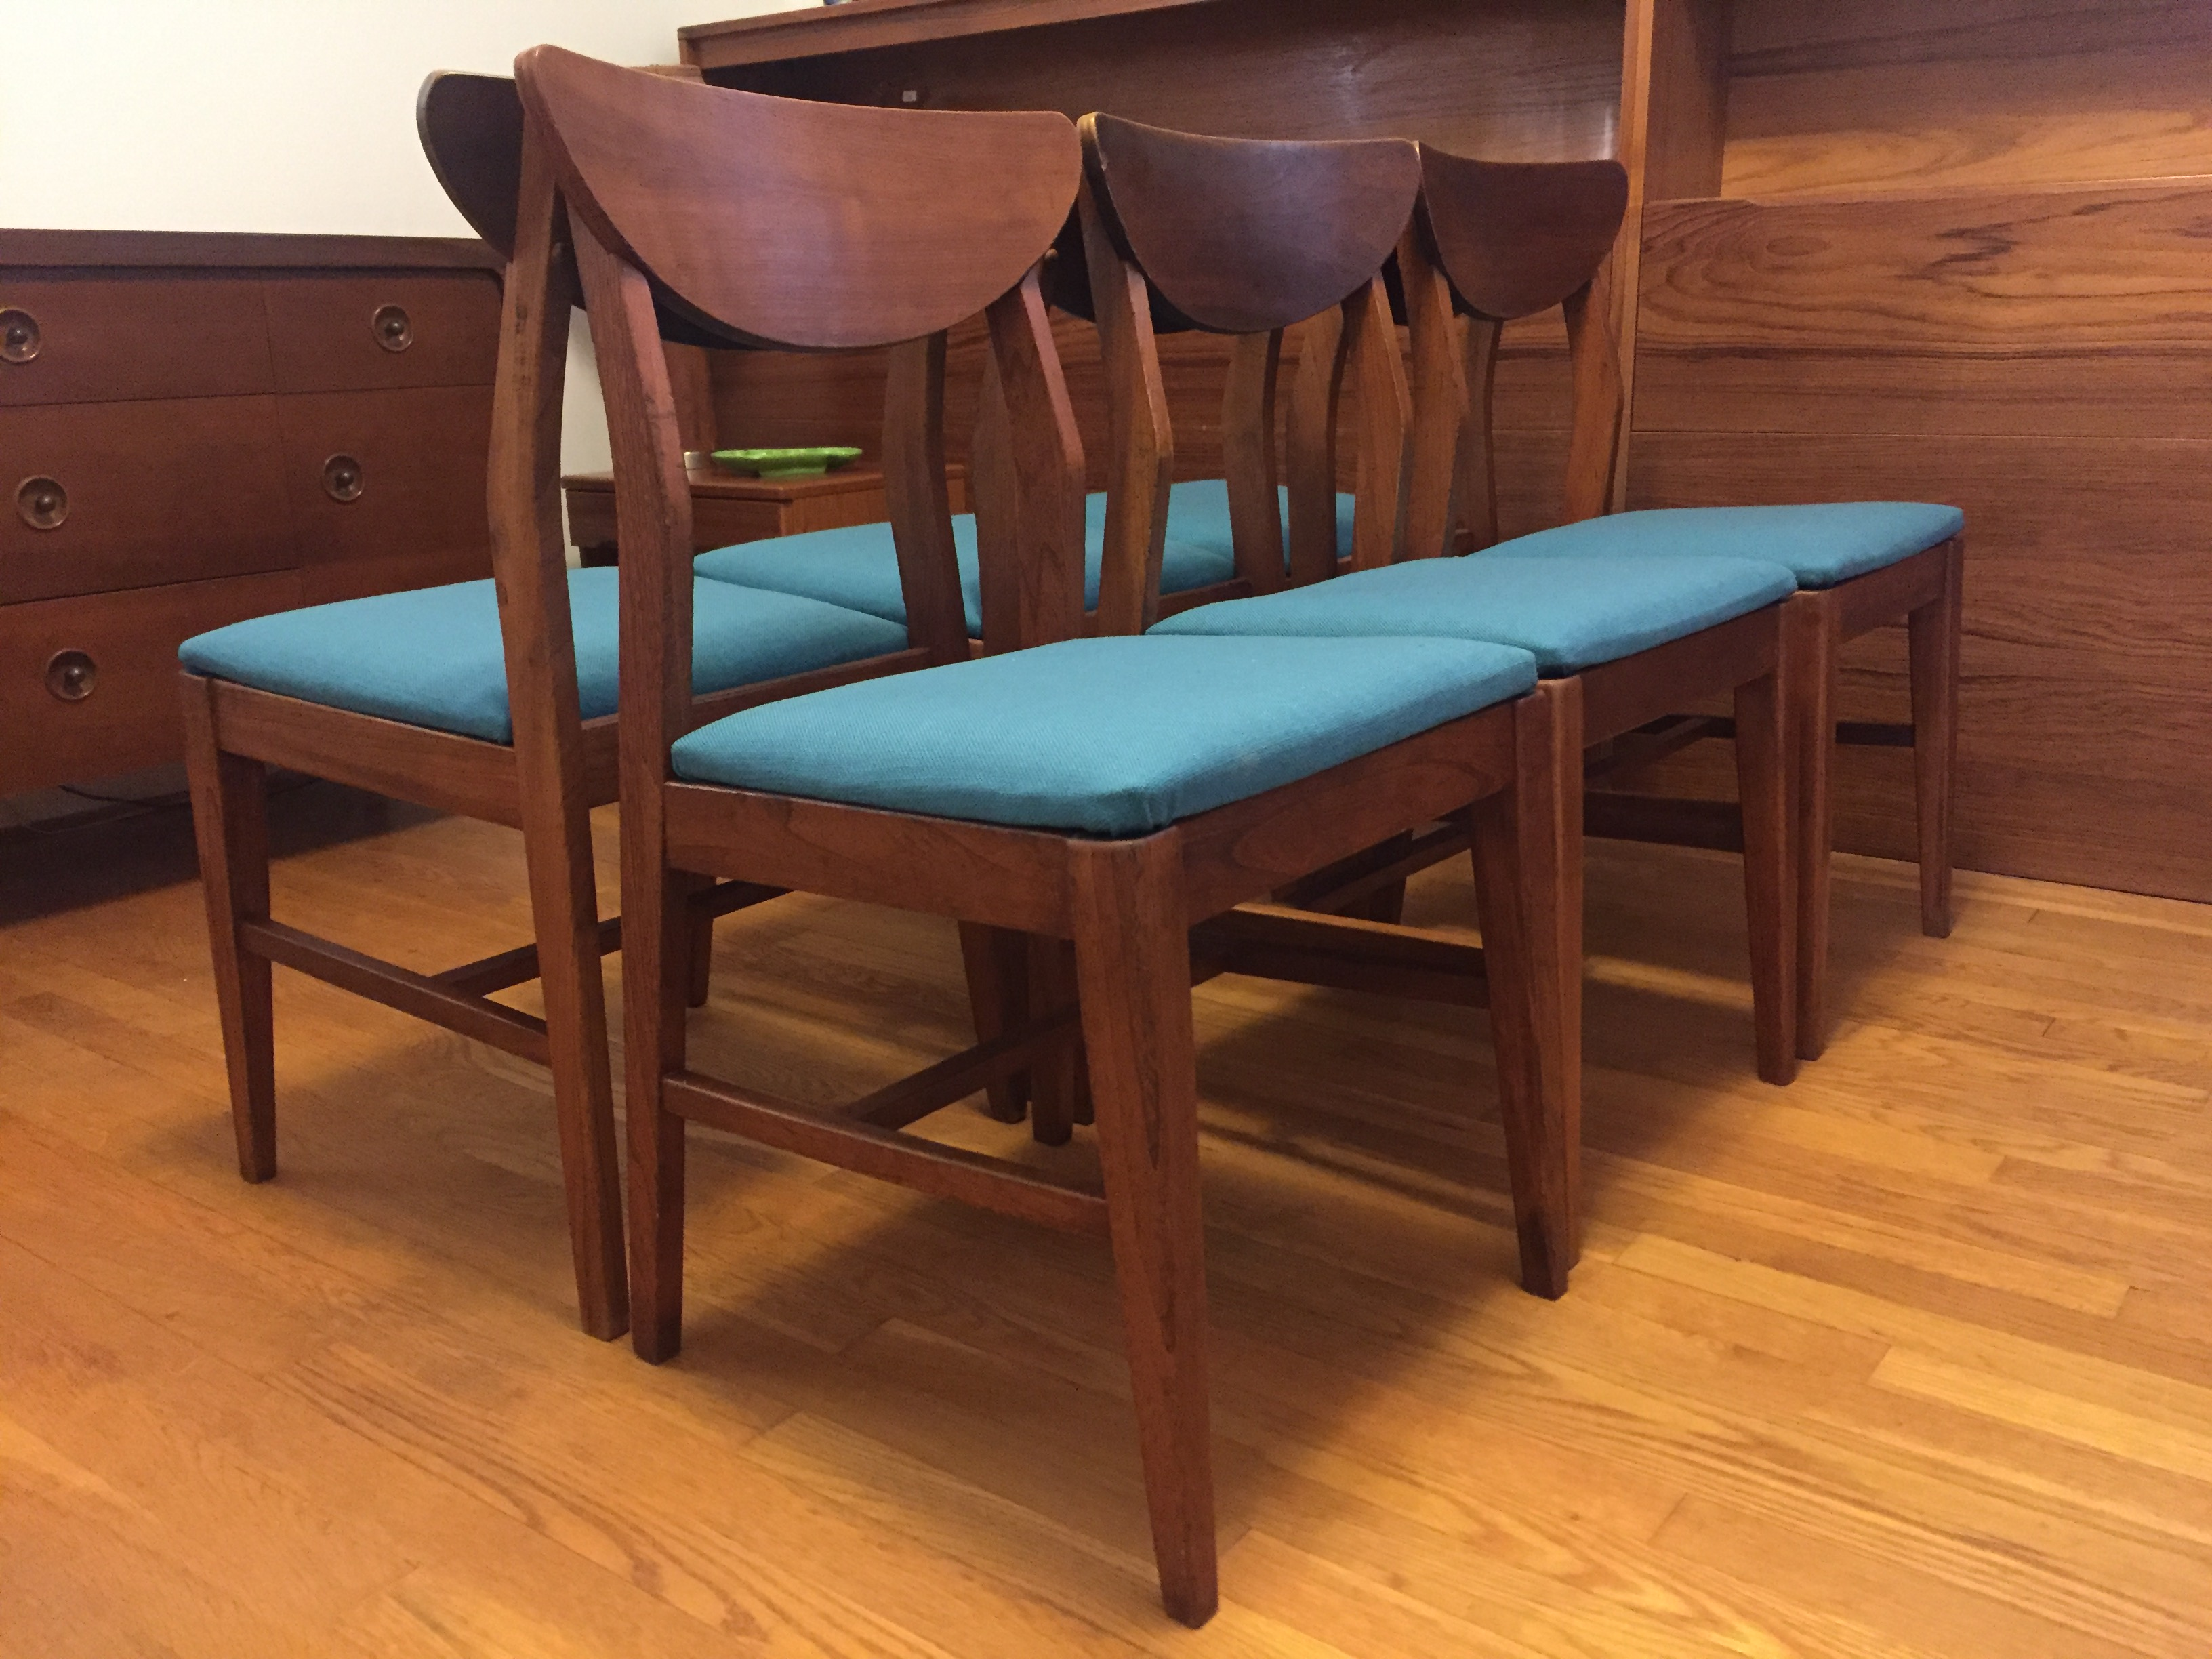 Mid Century Modern Walnut Dining Chairs with Teal ...